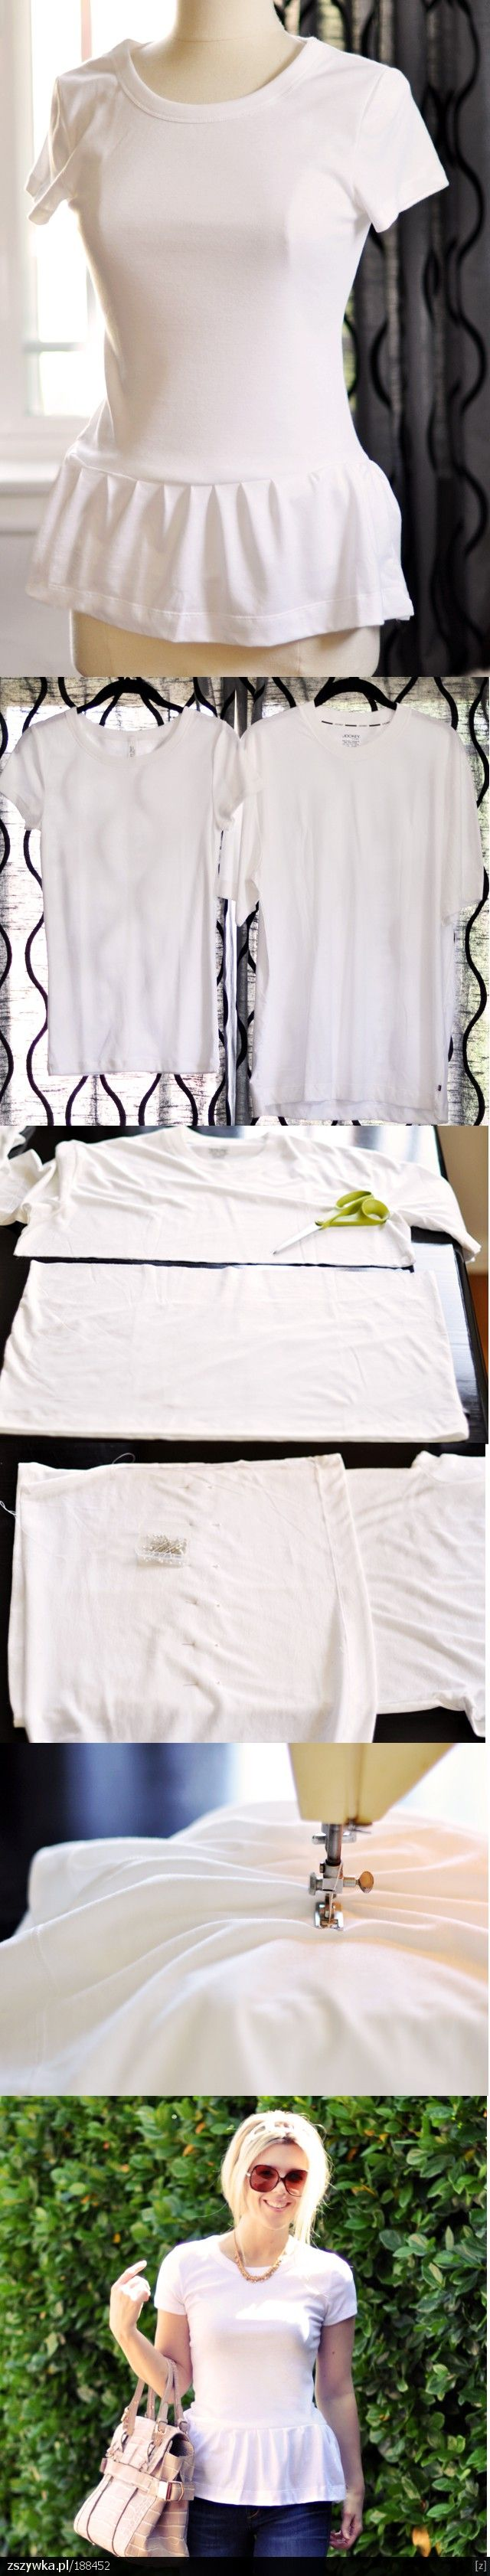 DIY: Tee Makeover Edition   Le Chic Chic Boom